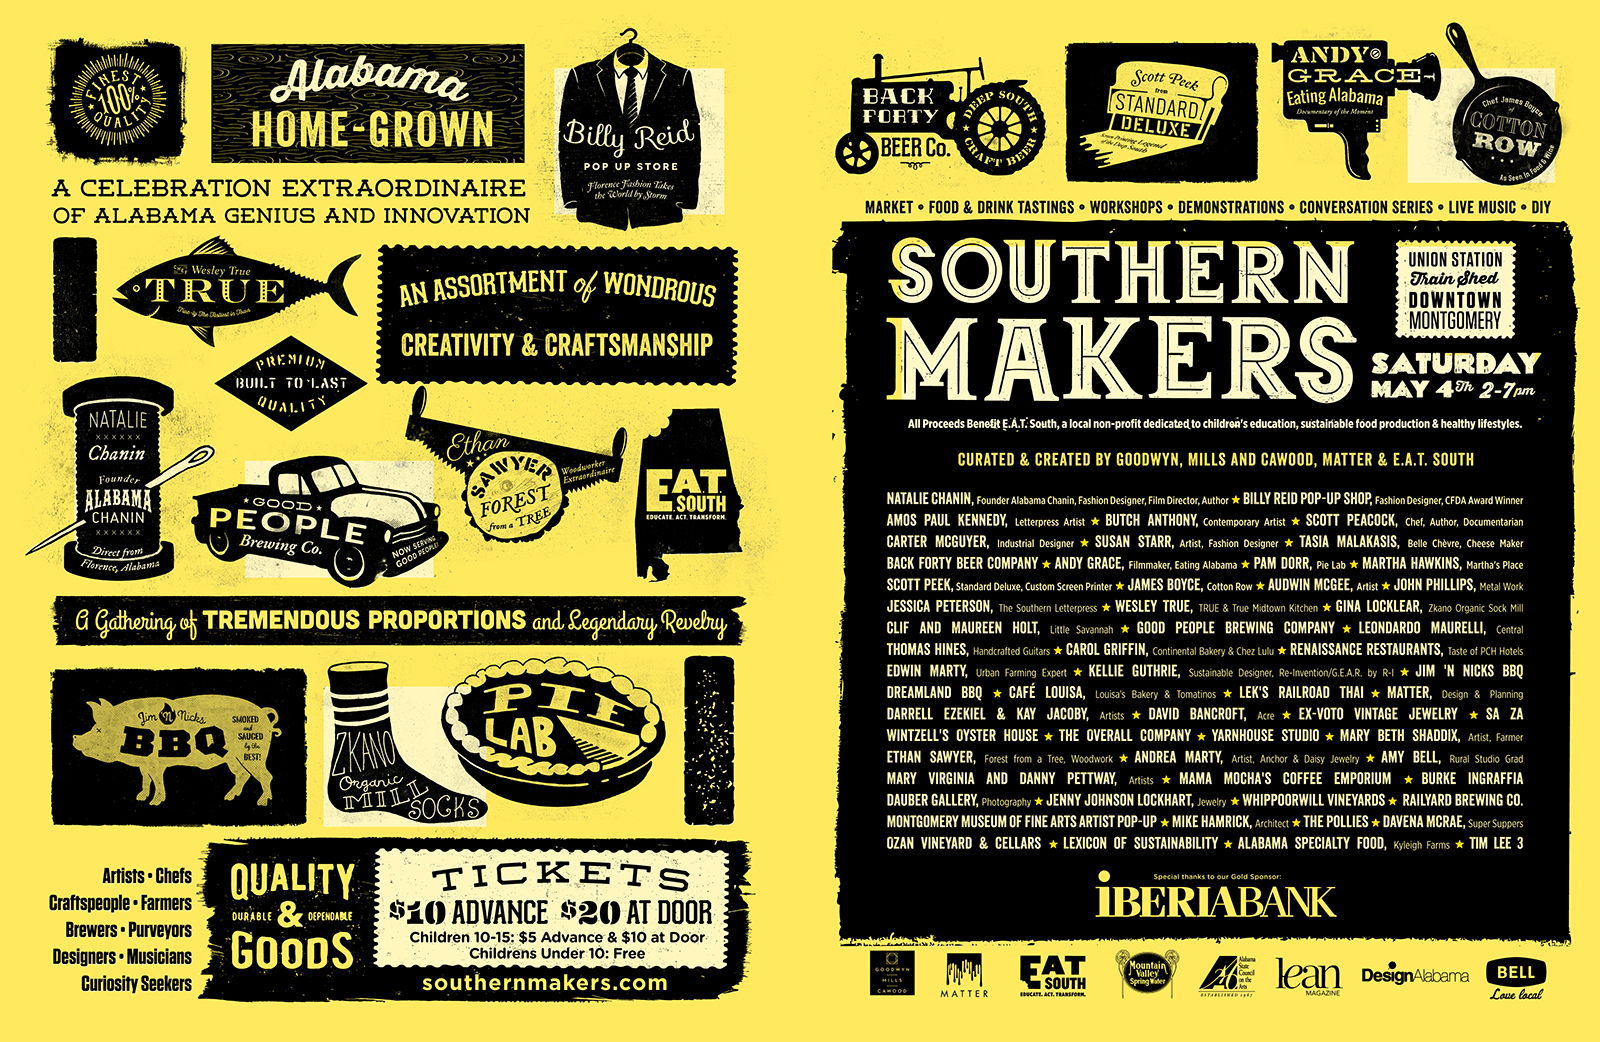 Southern Makers Ad.jpg